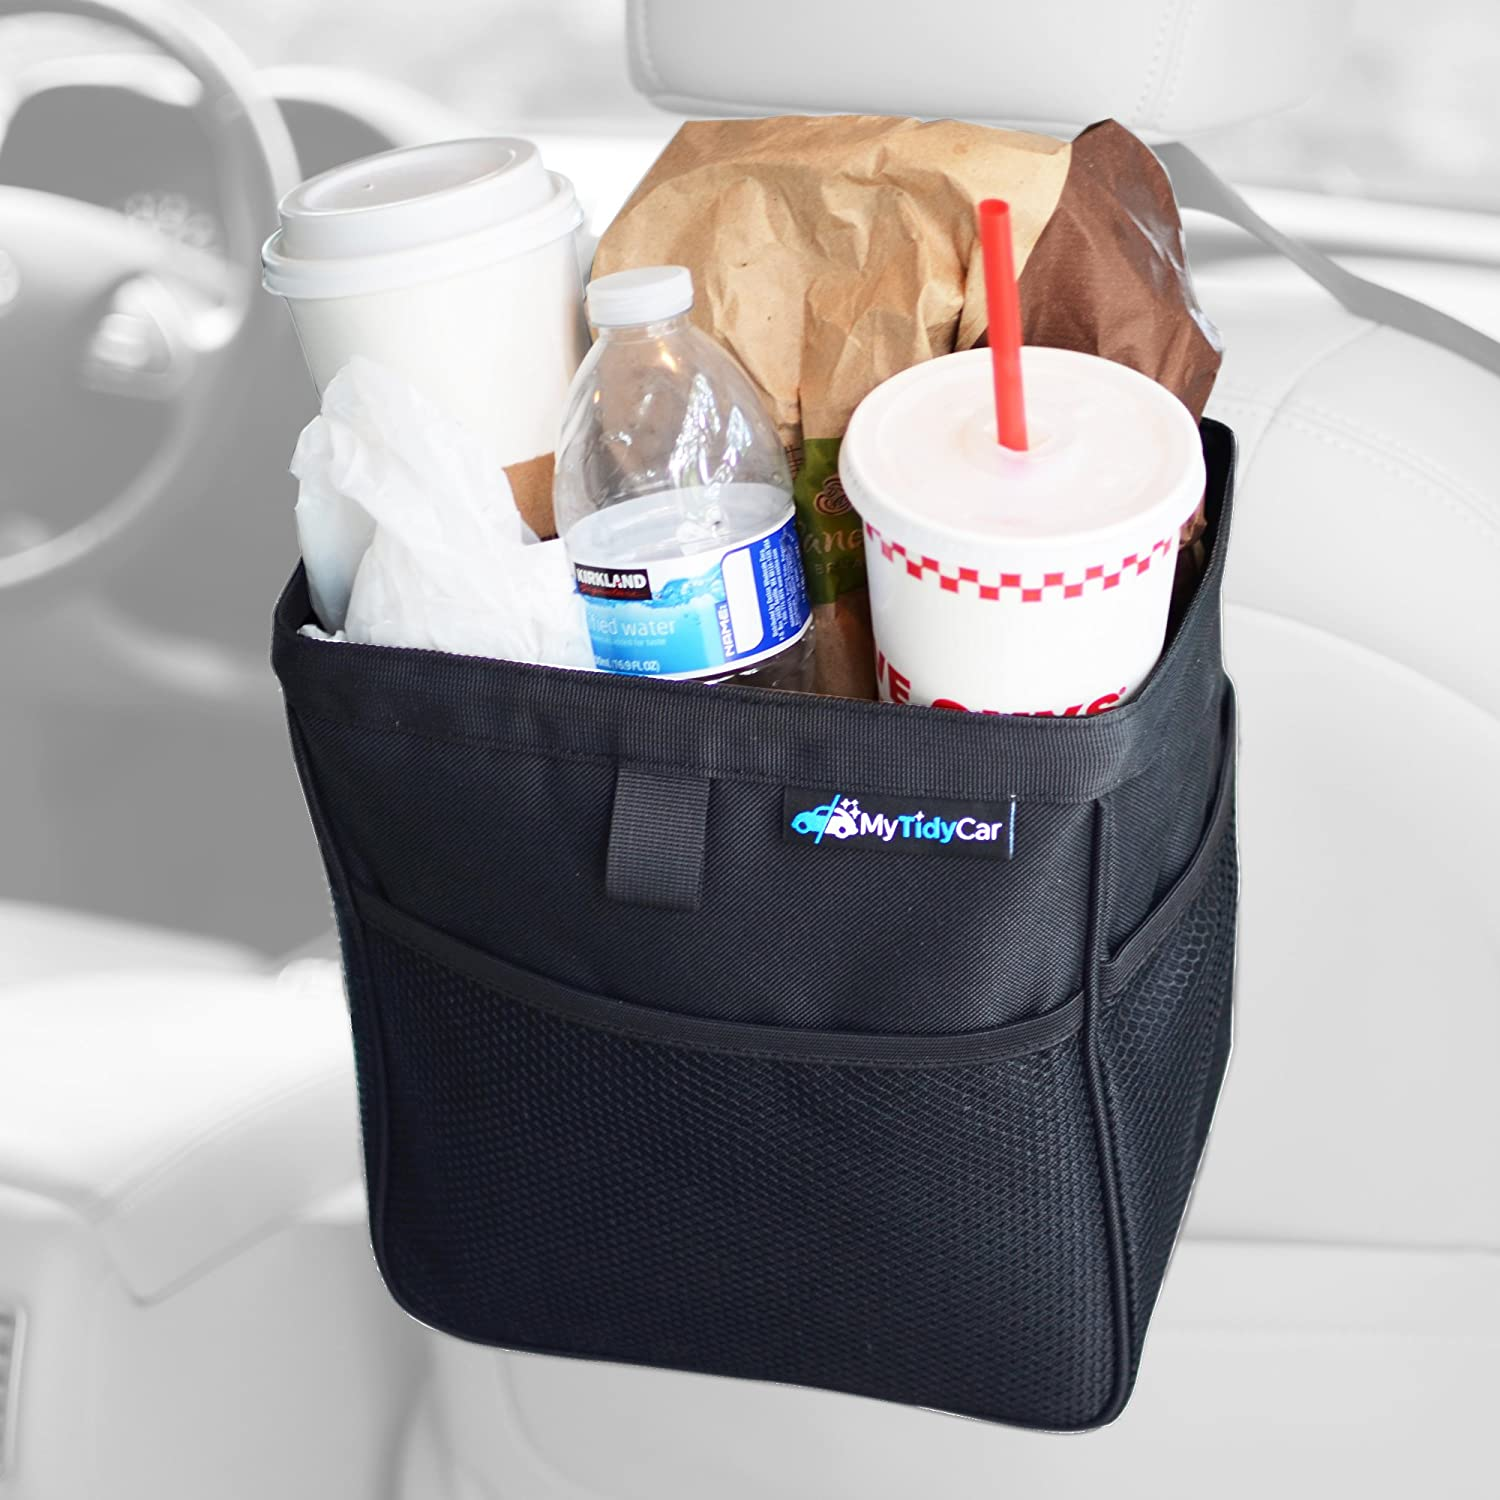 Car Rubbish Bin - Universal Premium Car Rubbish Bin / Cooler Bag with Side Net Pocket and Leakproof MyTidyCar MTC-CTC-01-BK